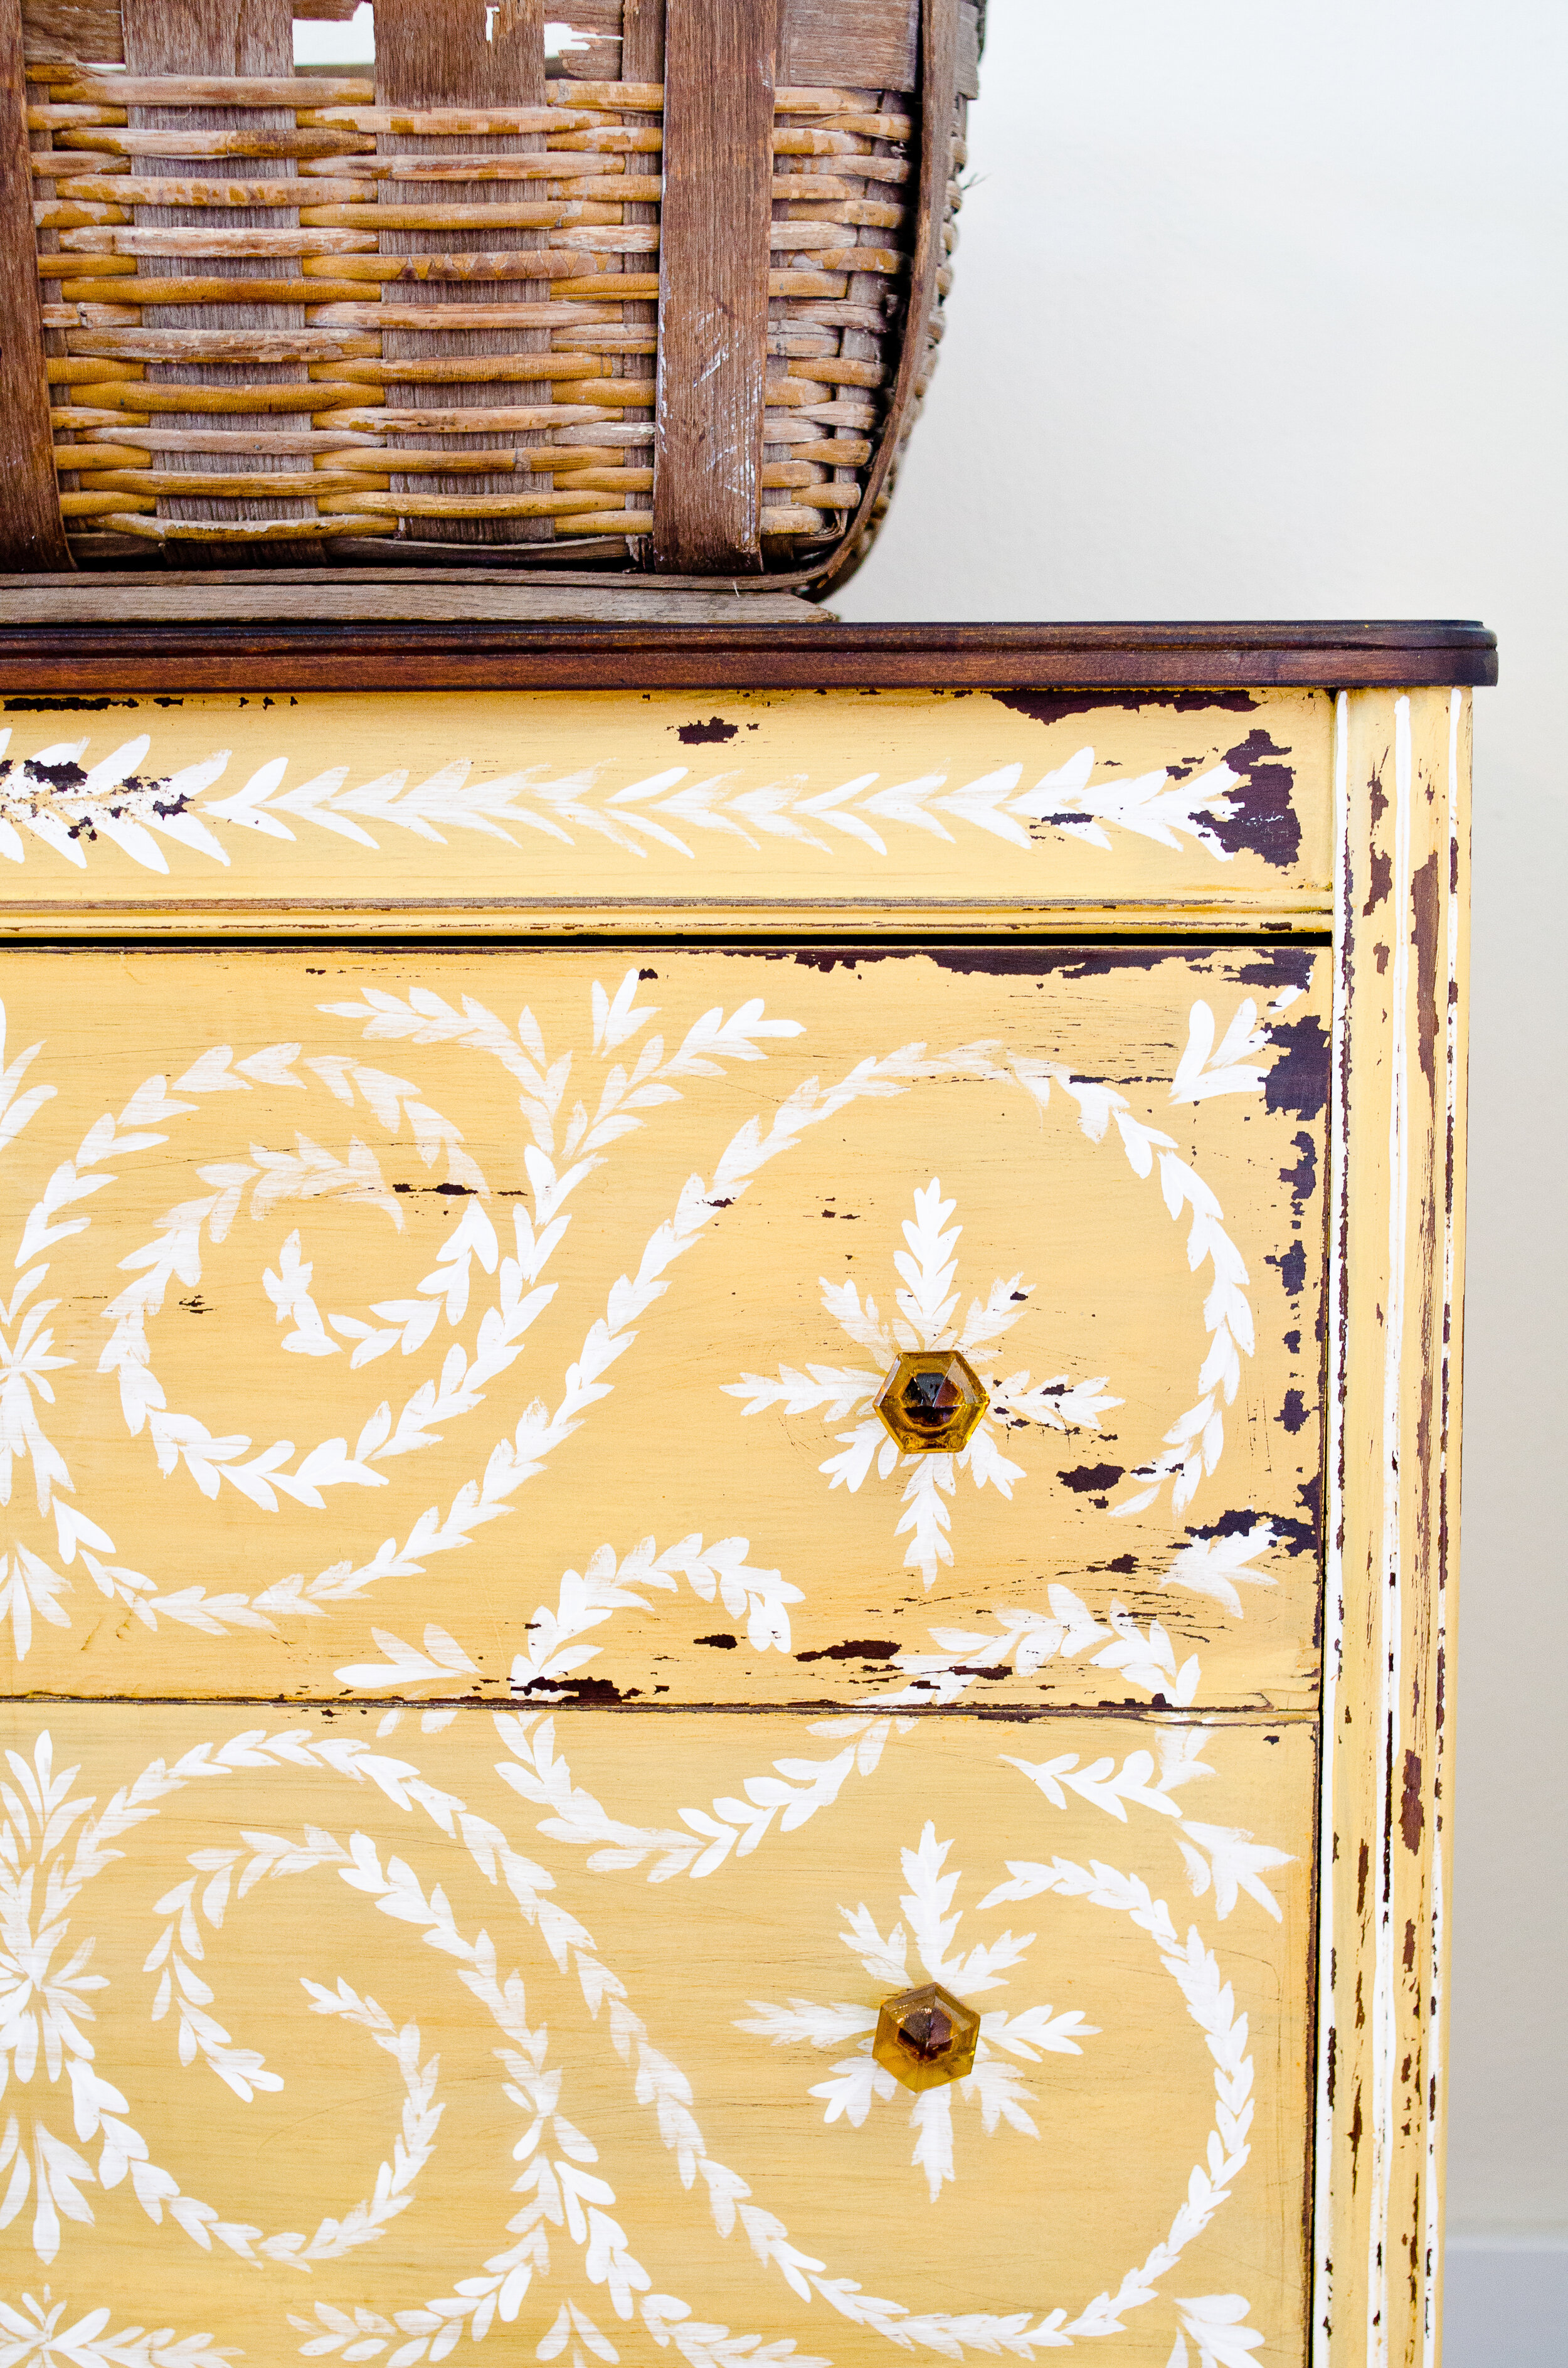 Chippy antique dresser painted in Mustard Seed Yellow Milk Paint with hand-painted floral design